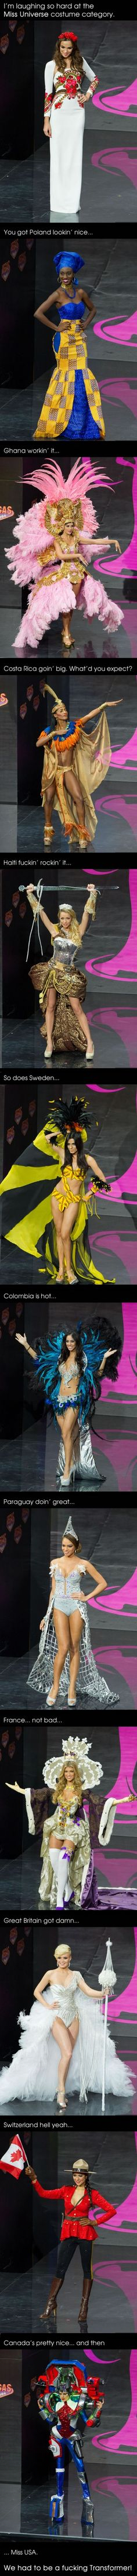 Miss Universe Costume Category, Click the link to view today's funniest pictures!